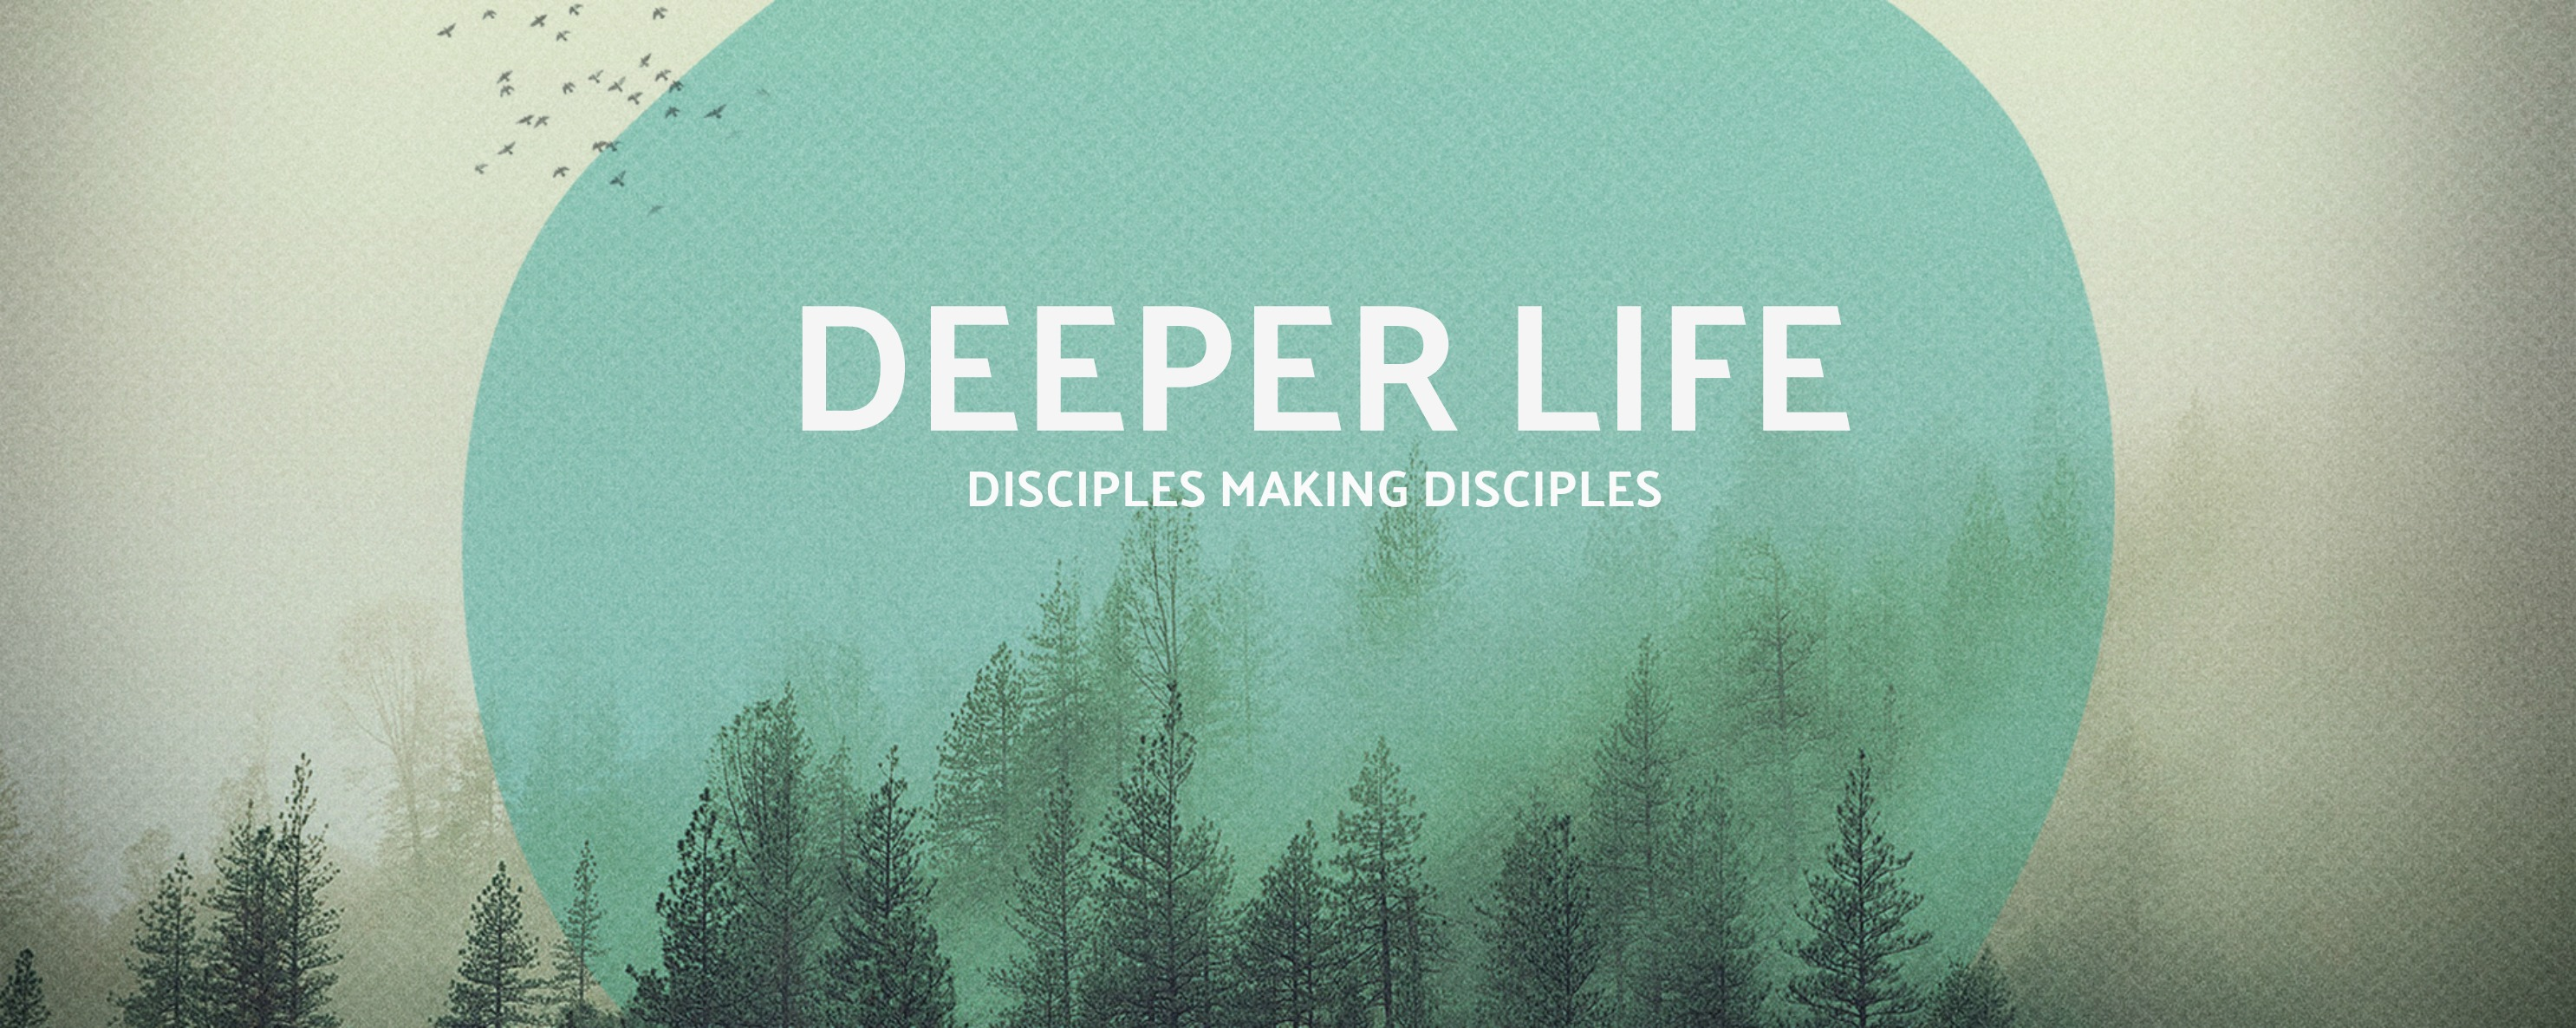 Deeper Life with subtitle